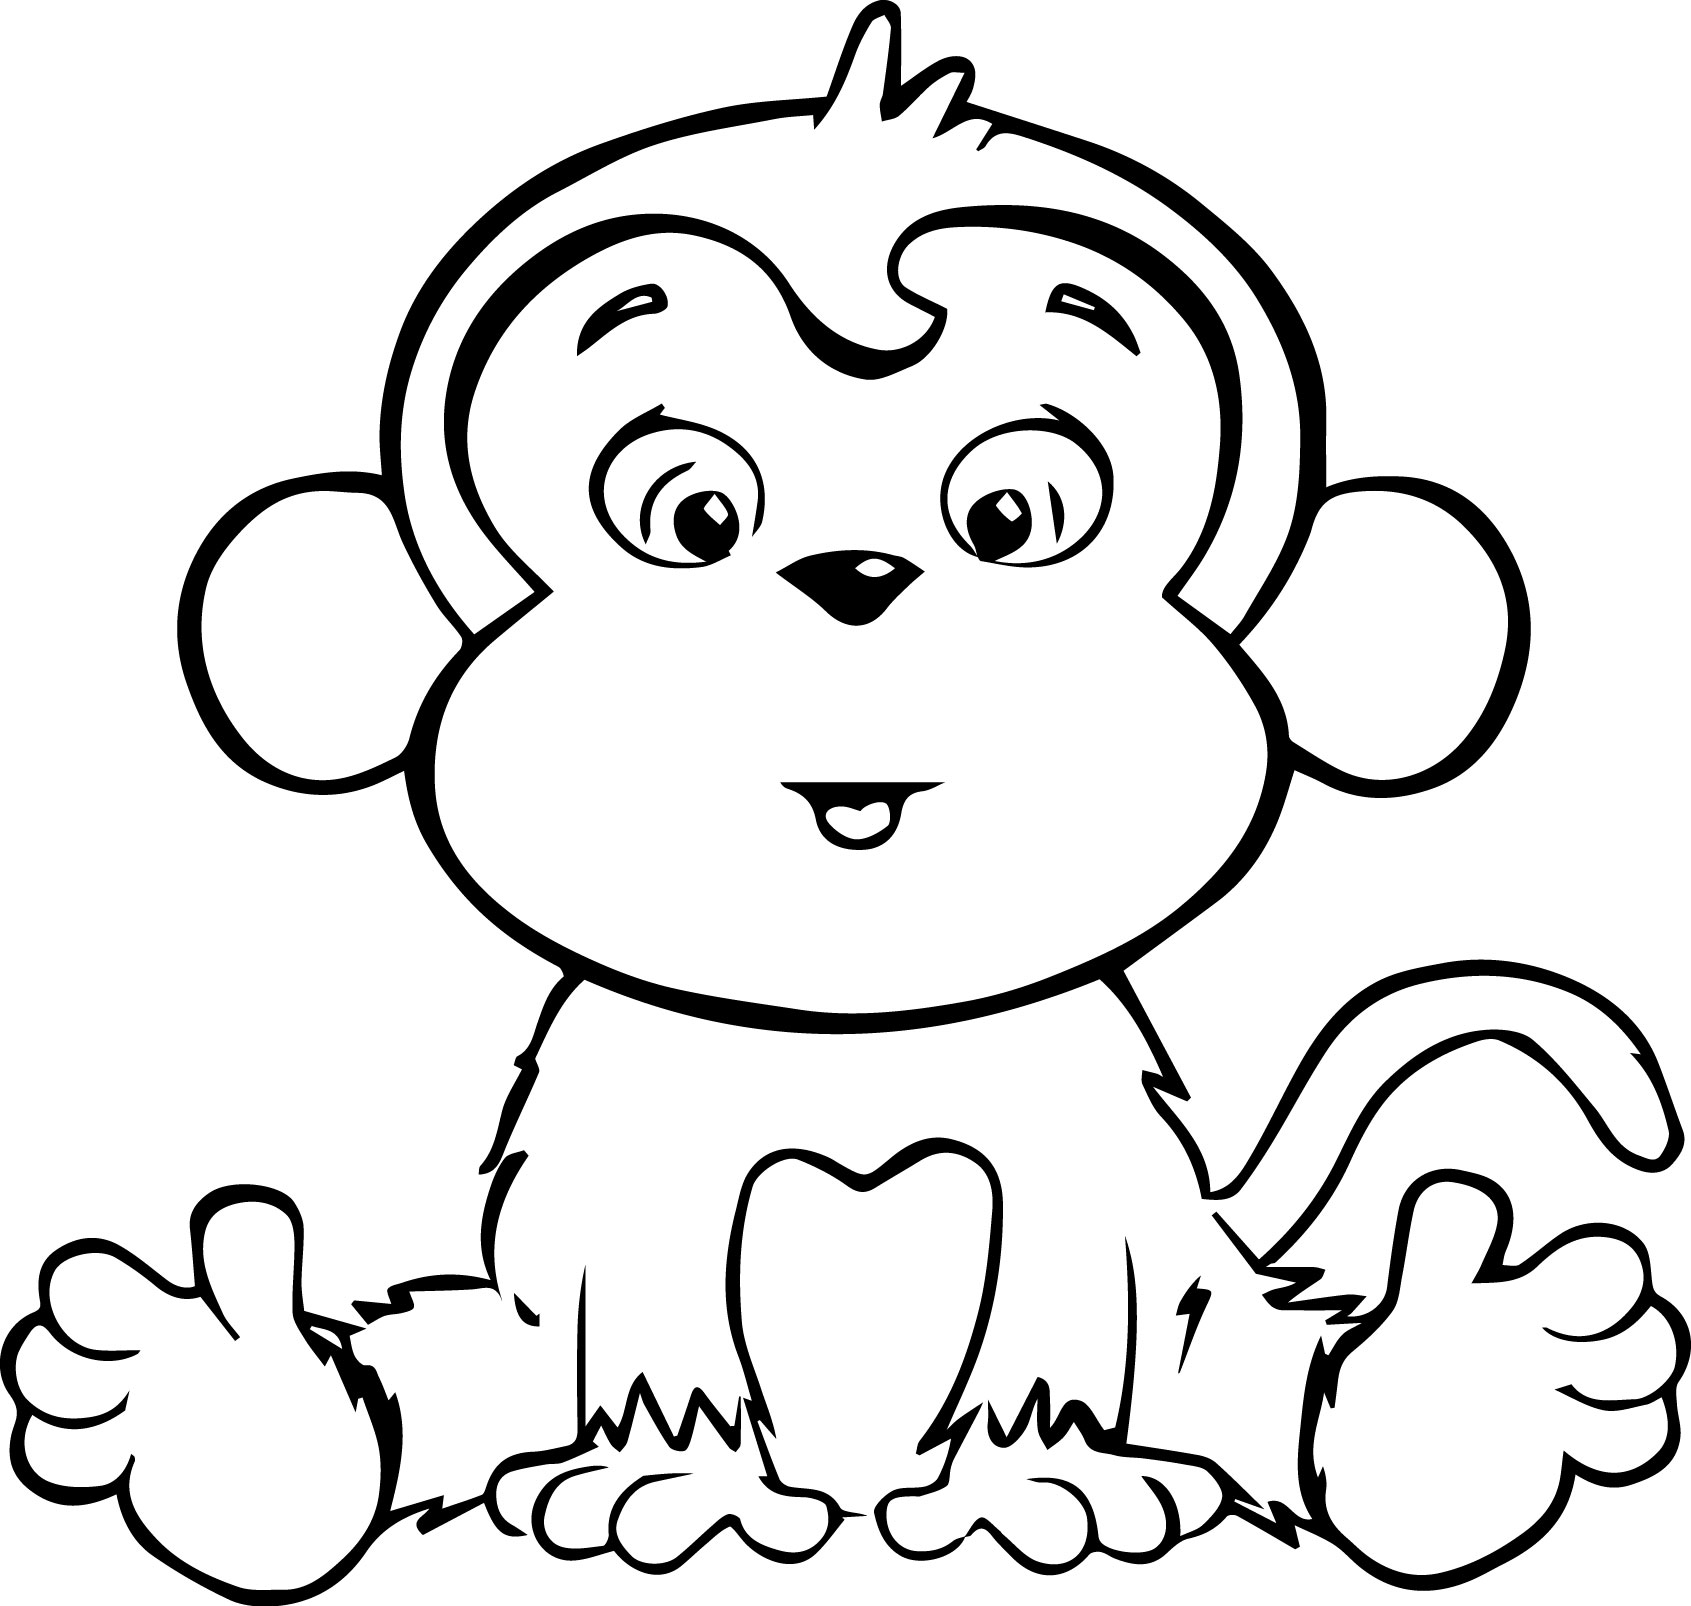 1691x1606 Selected Cartoon Character Colouring Pages Fre